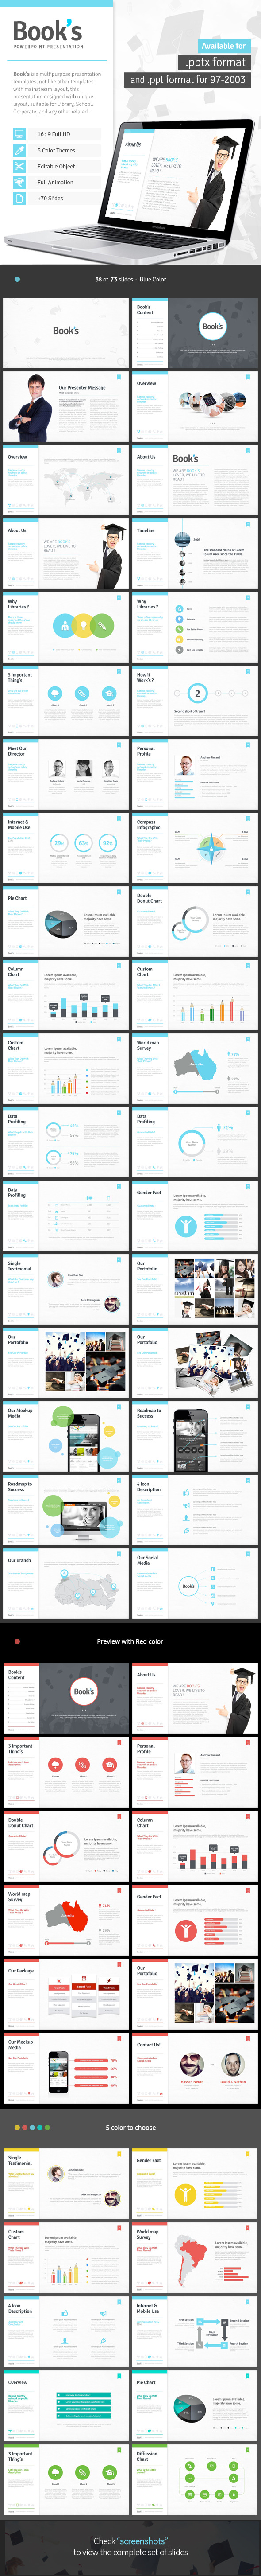 Book's - Powerpoint Template  - Creative PowerPoint Templates